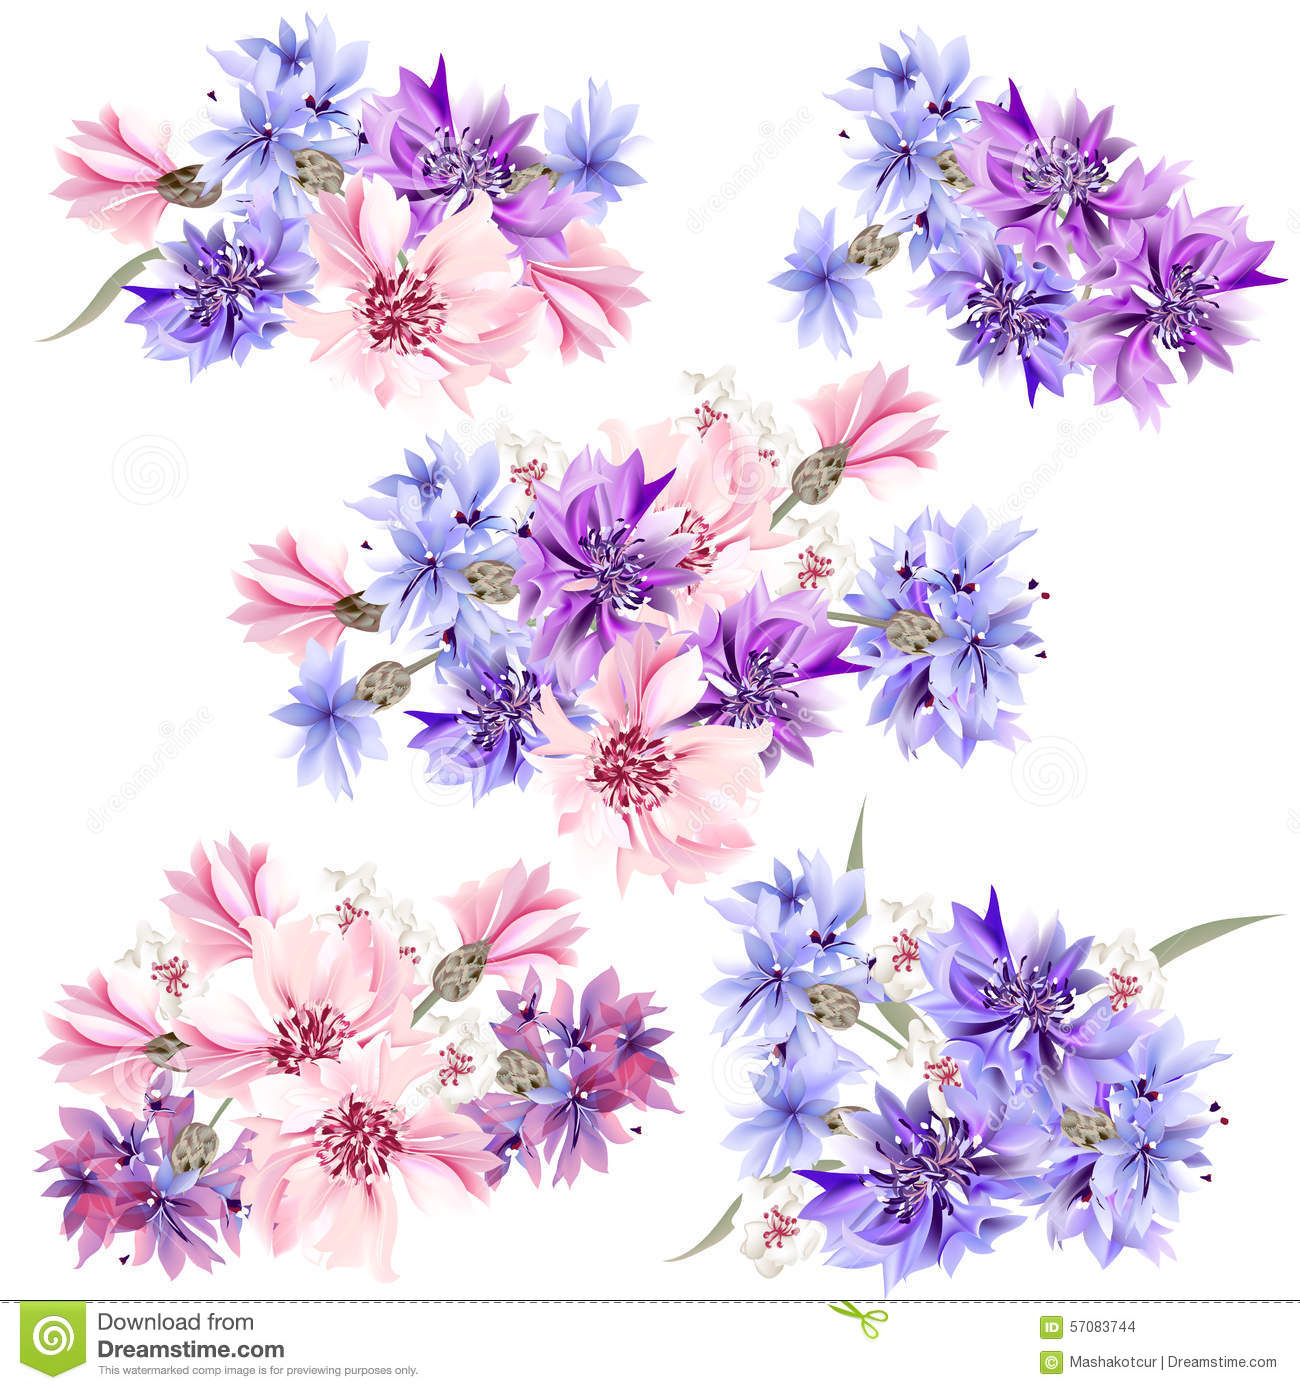 Set of floral designs in watercolor style with flowers stock vector download set of floral designs in watercolor style with flowers stock vector illustration of invitation izmirmasajfo